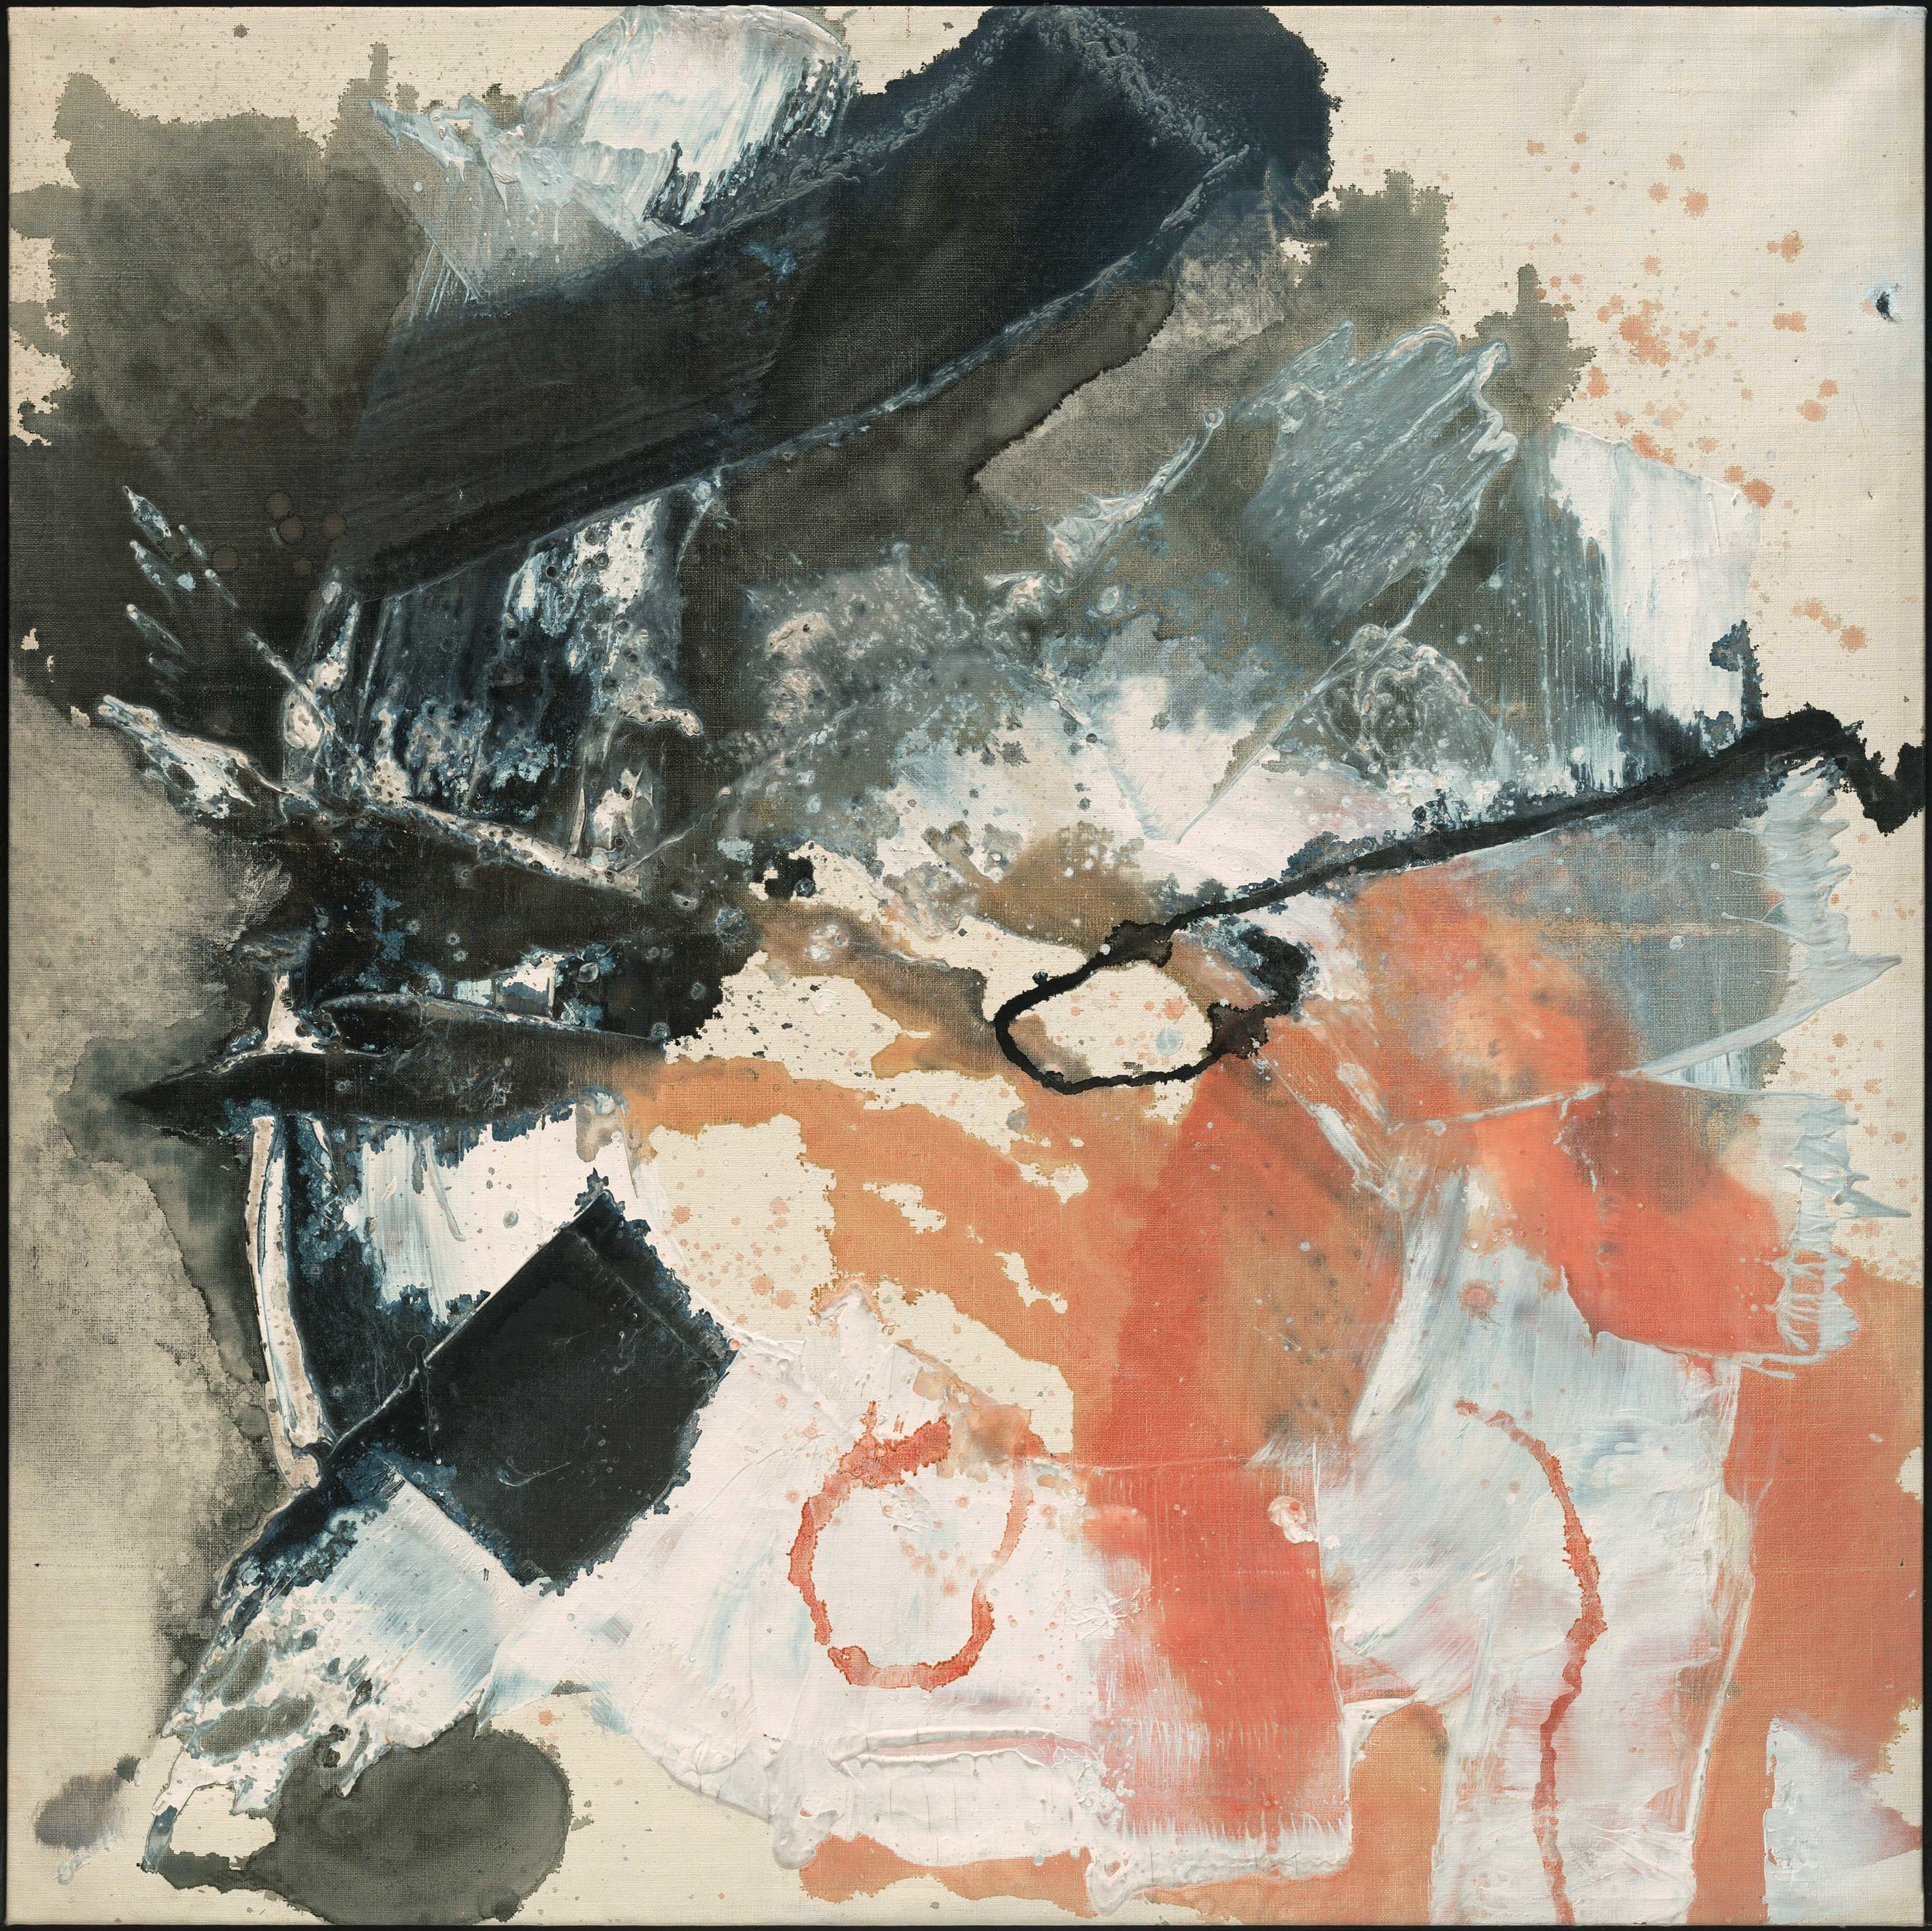 Masatoyo Kishi – Opus No. 60-145 (detail), 48 x 48 in, 1960, oil on canvas